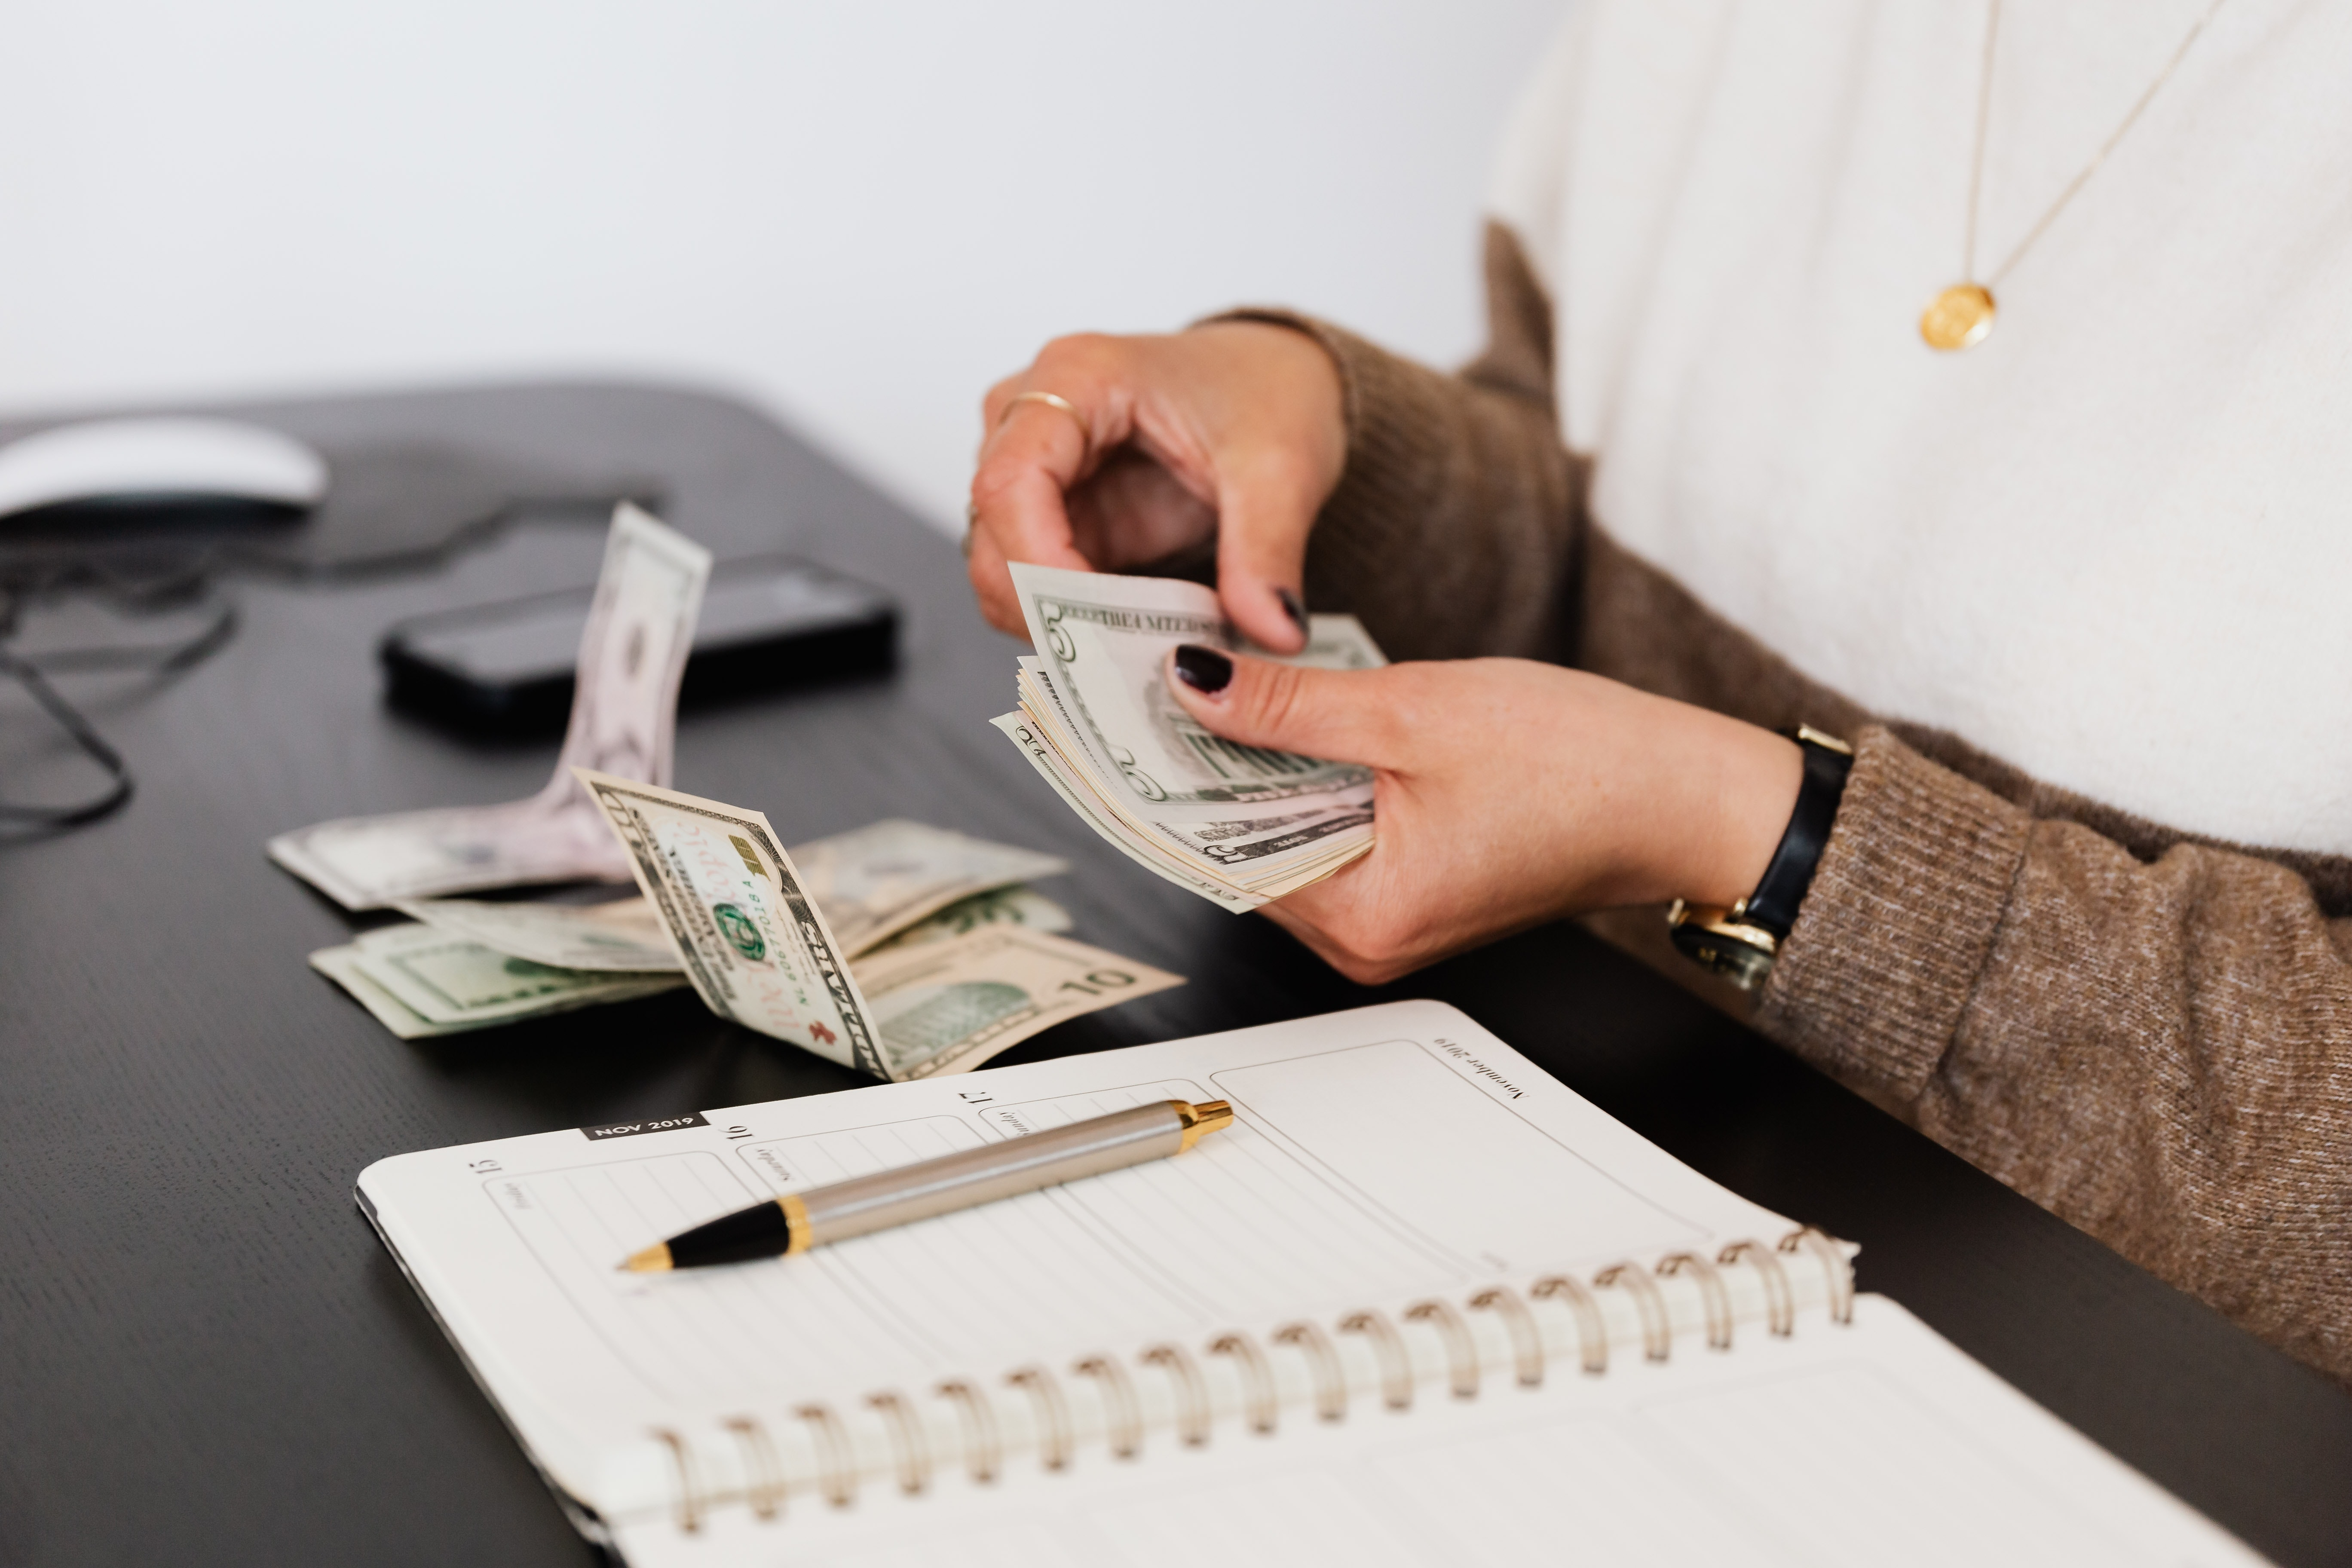 Working as freelance writer: Salary, rates & income